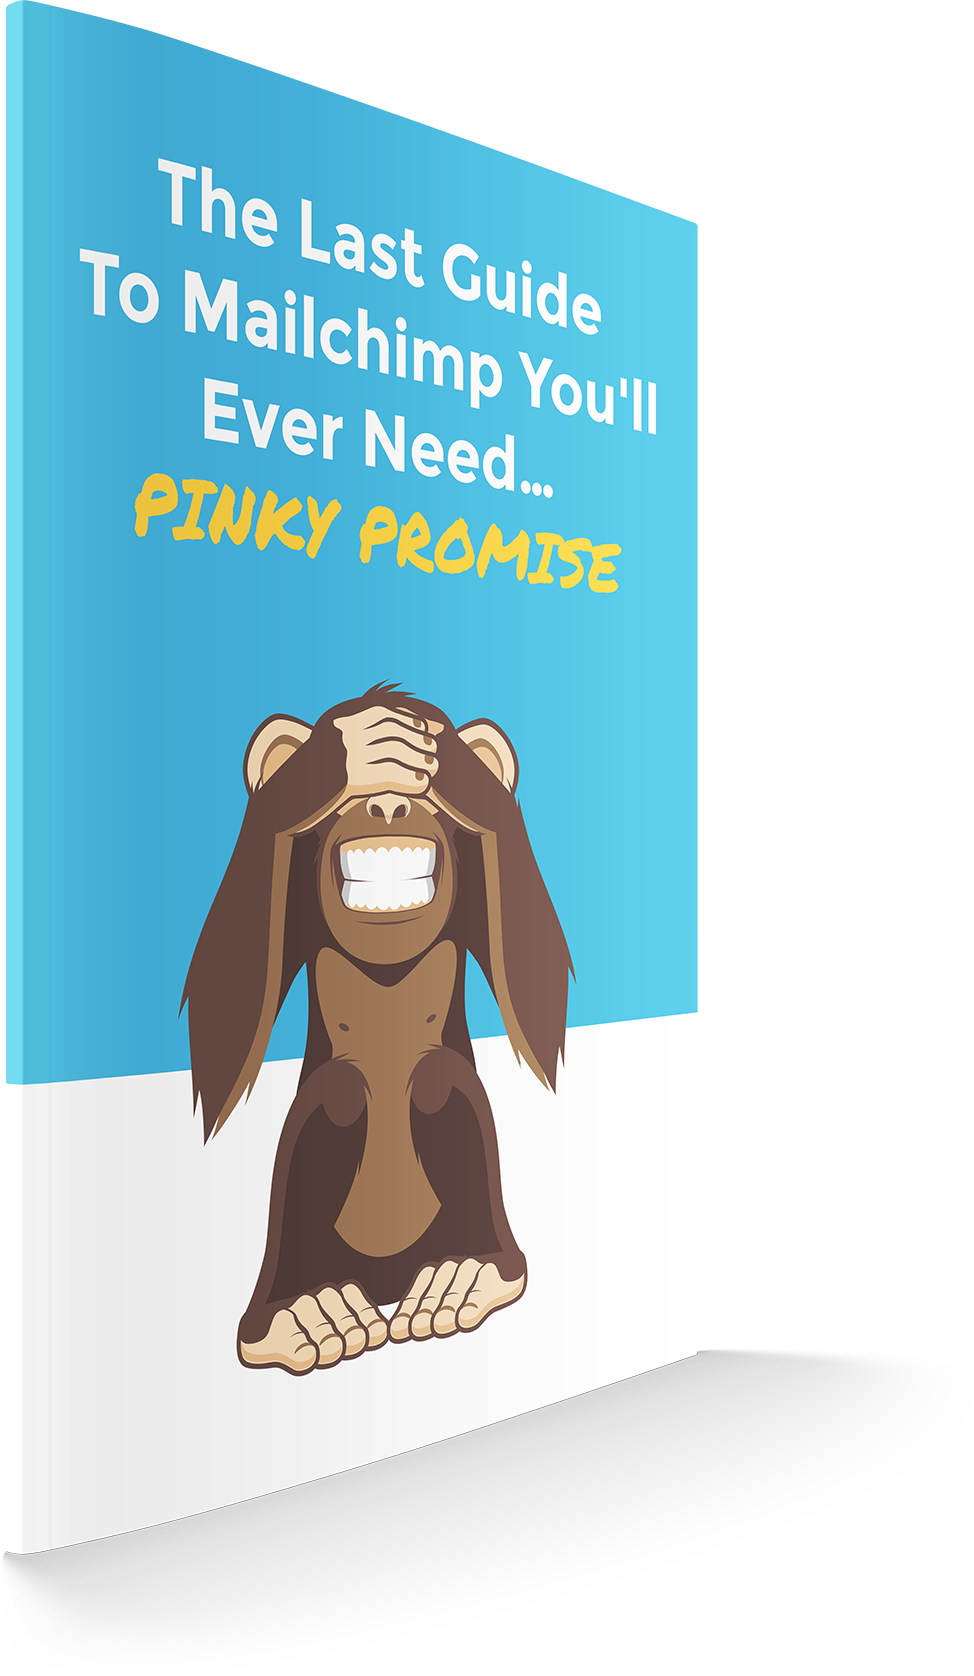 MailChimp Tutorial PDF Download